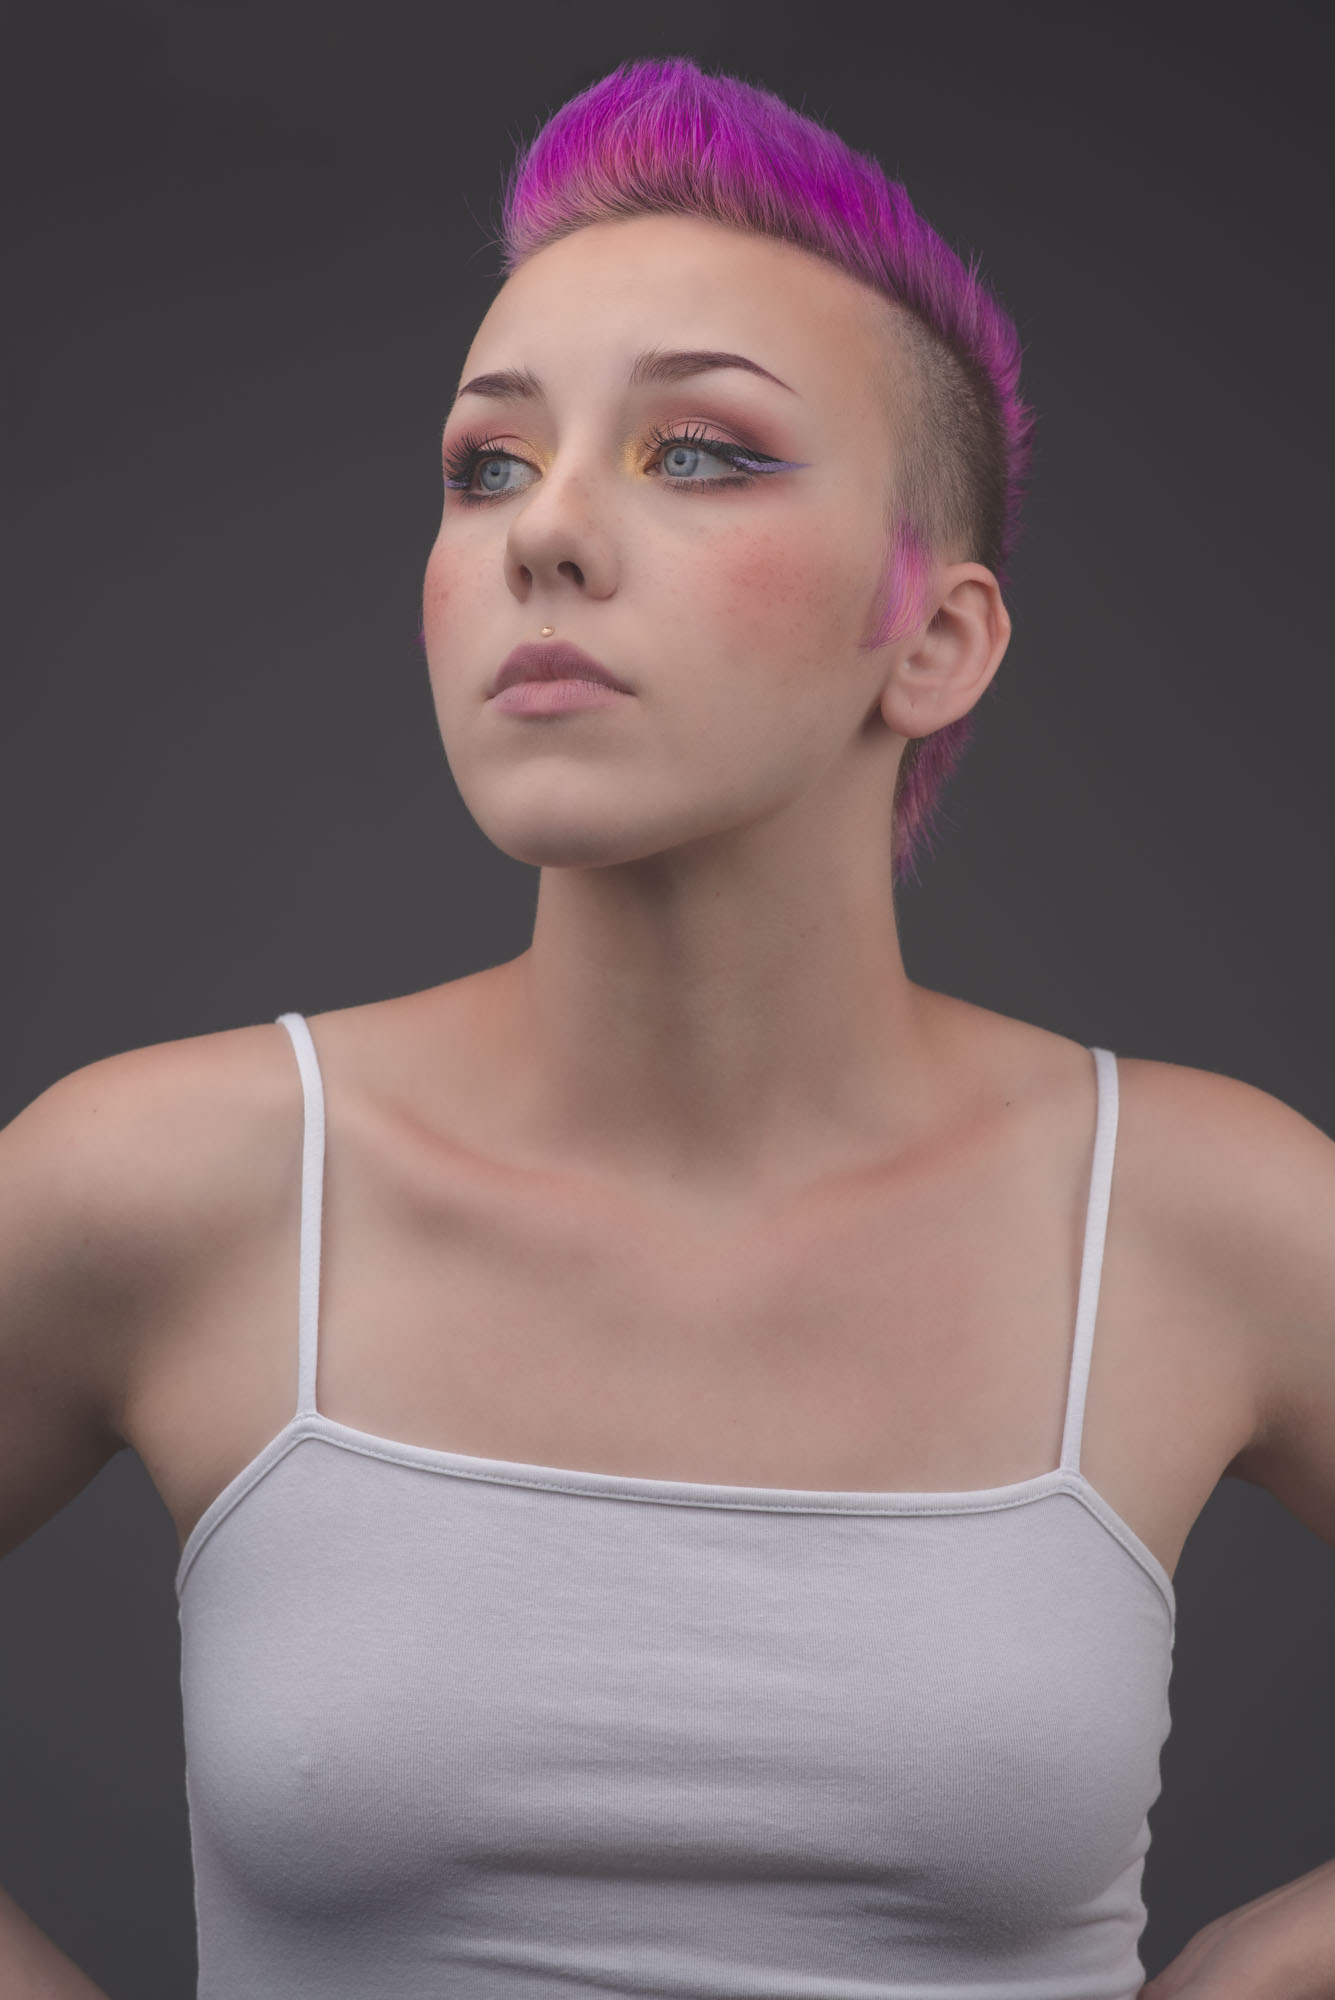 a portrait of Marybeth wearing a white tank top and a purple pink mohawk styled hairdo.